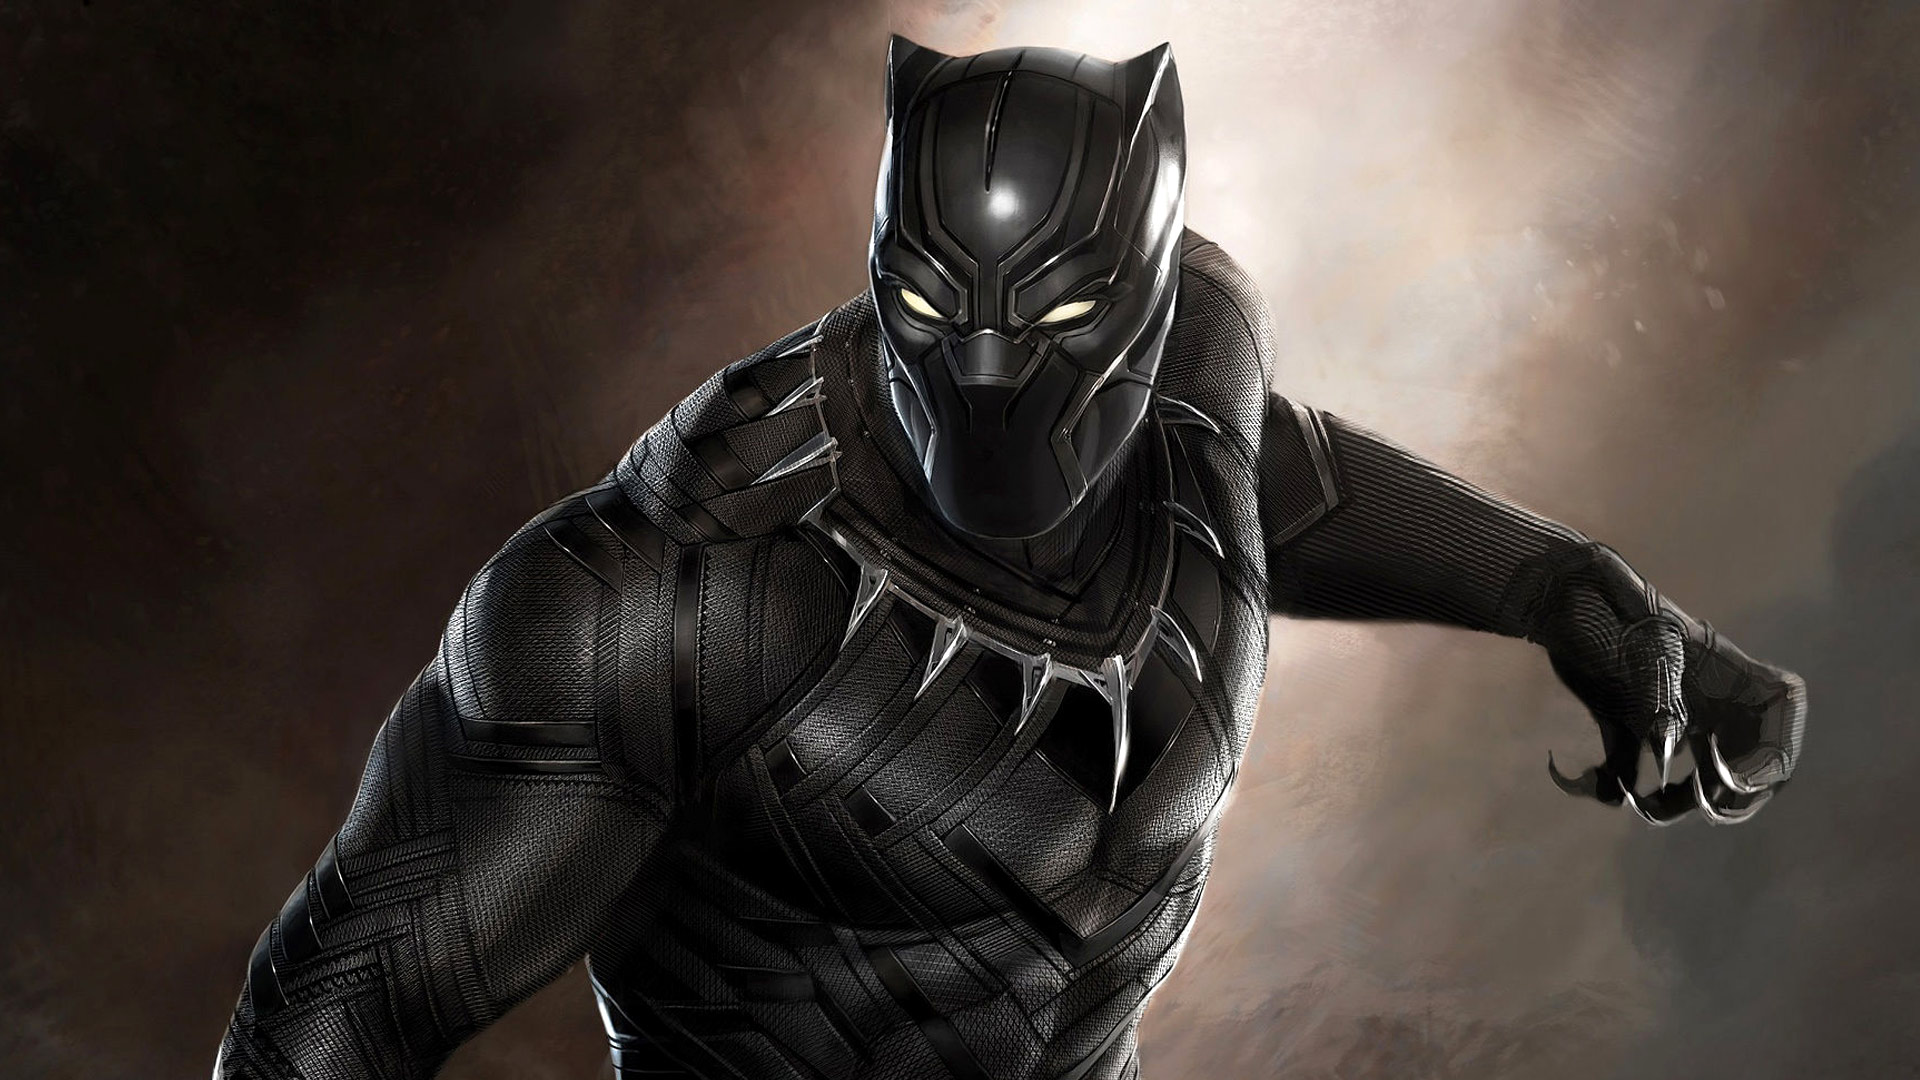 Download Black Panther Wallpaper For iOS 1920x1080